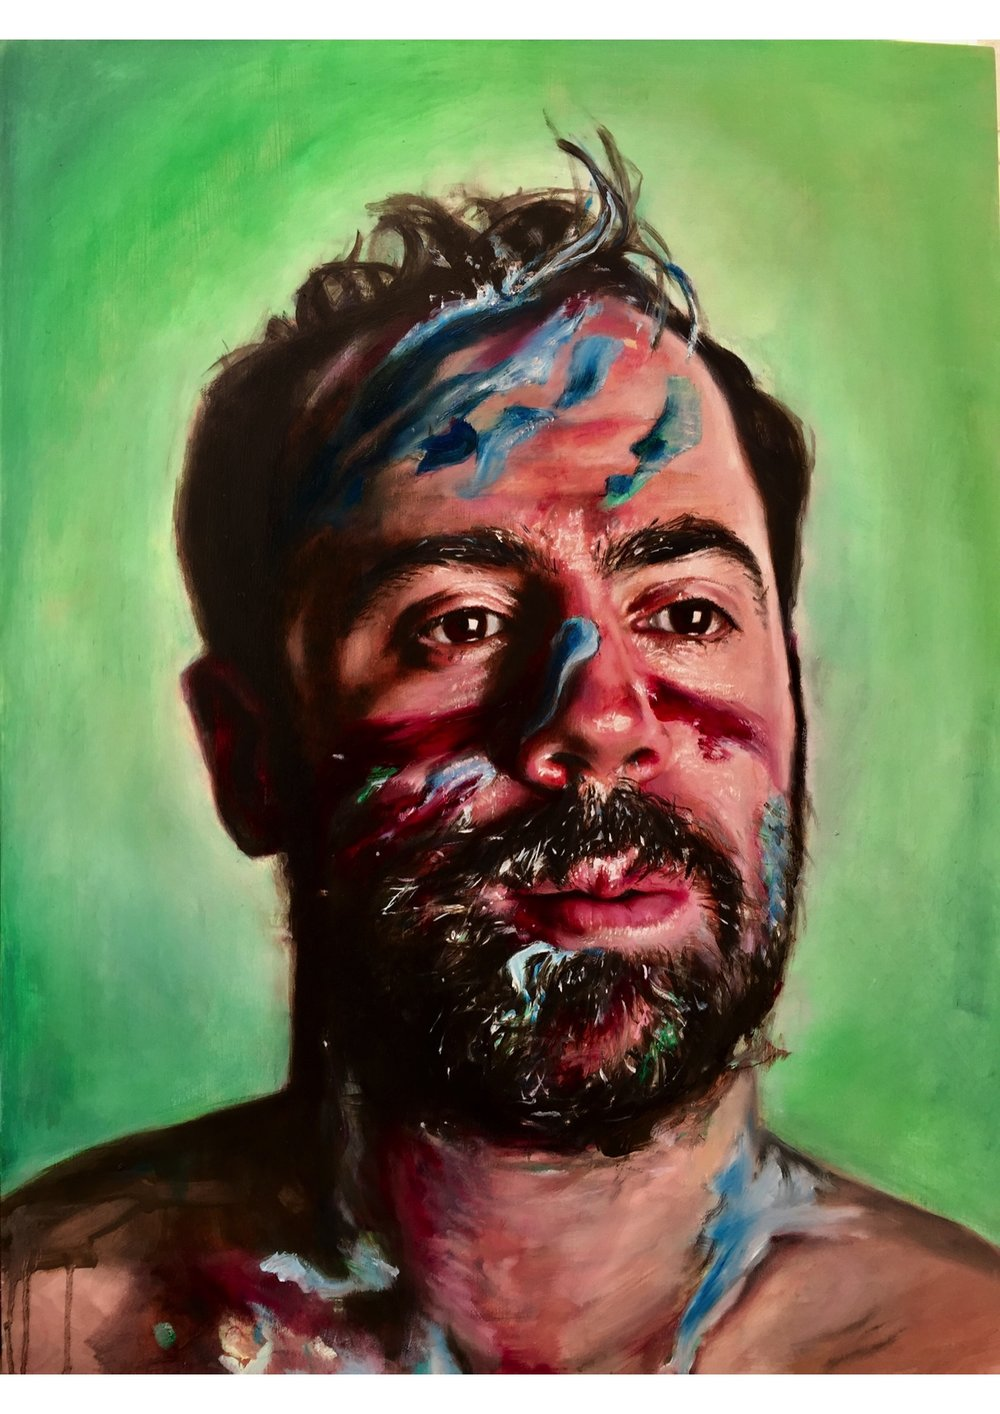 Dan, Paint Play. Oil on Board, 60x80cm (SOLD)